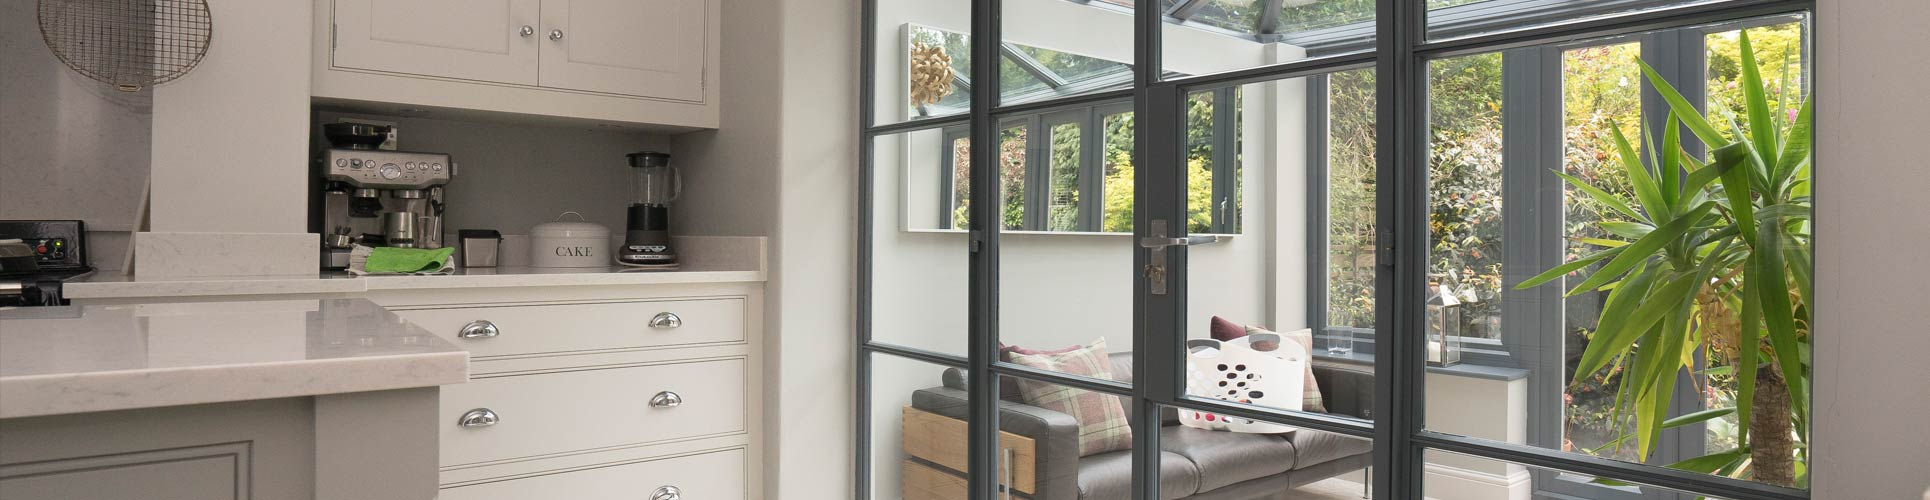 Crittall internal screen installed for a client in Manchester, separating the kitchen and conservatory.